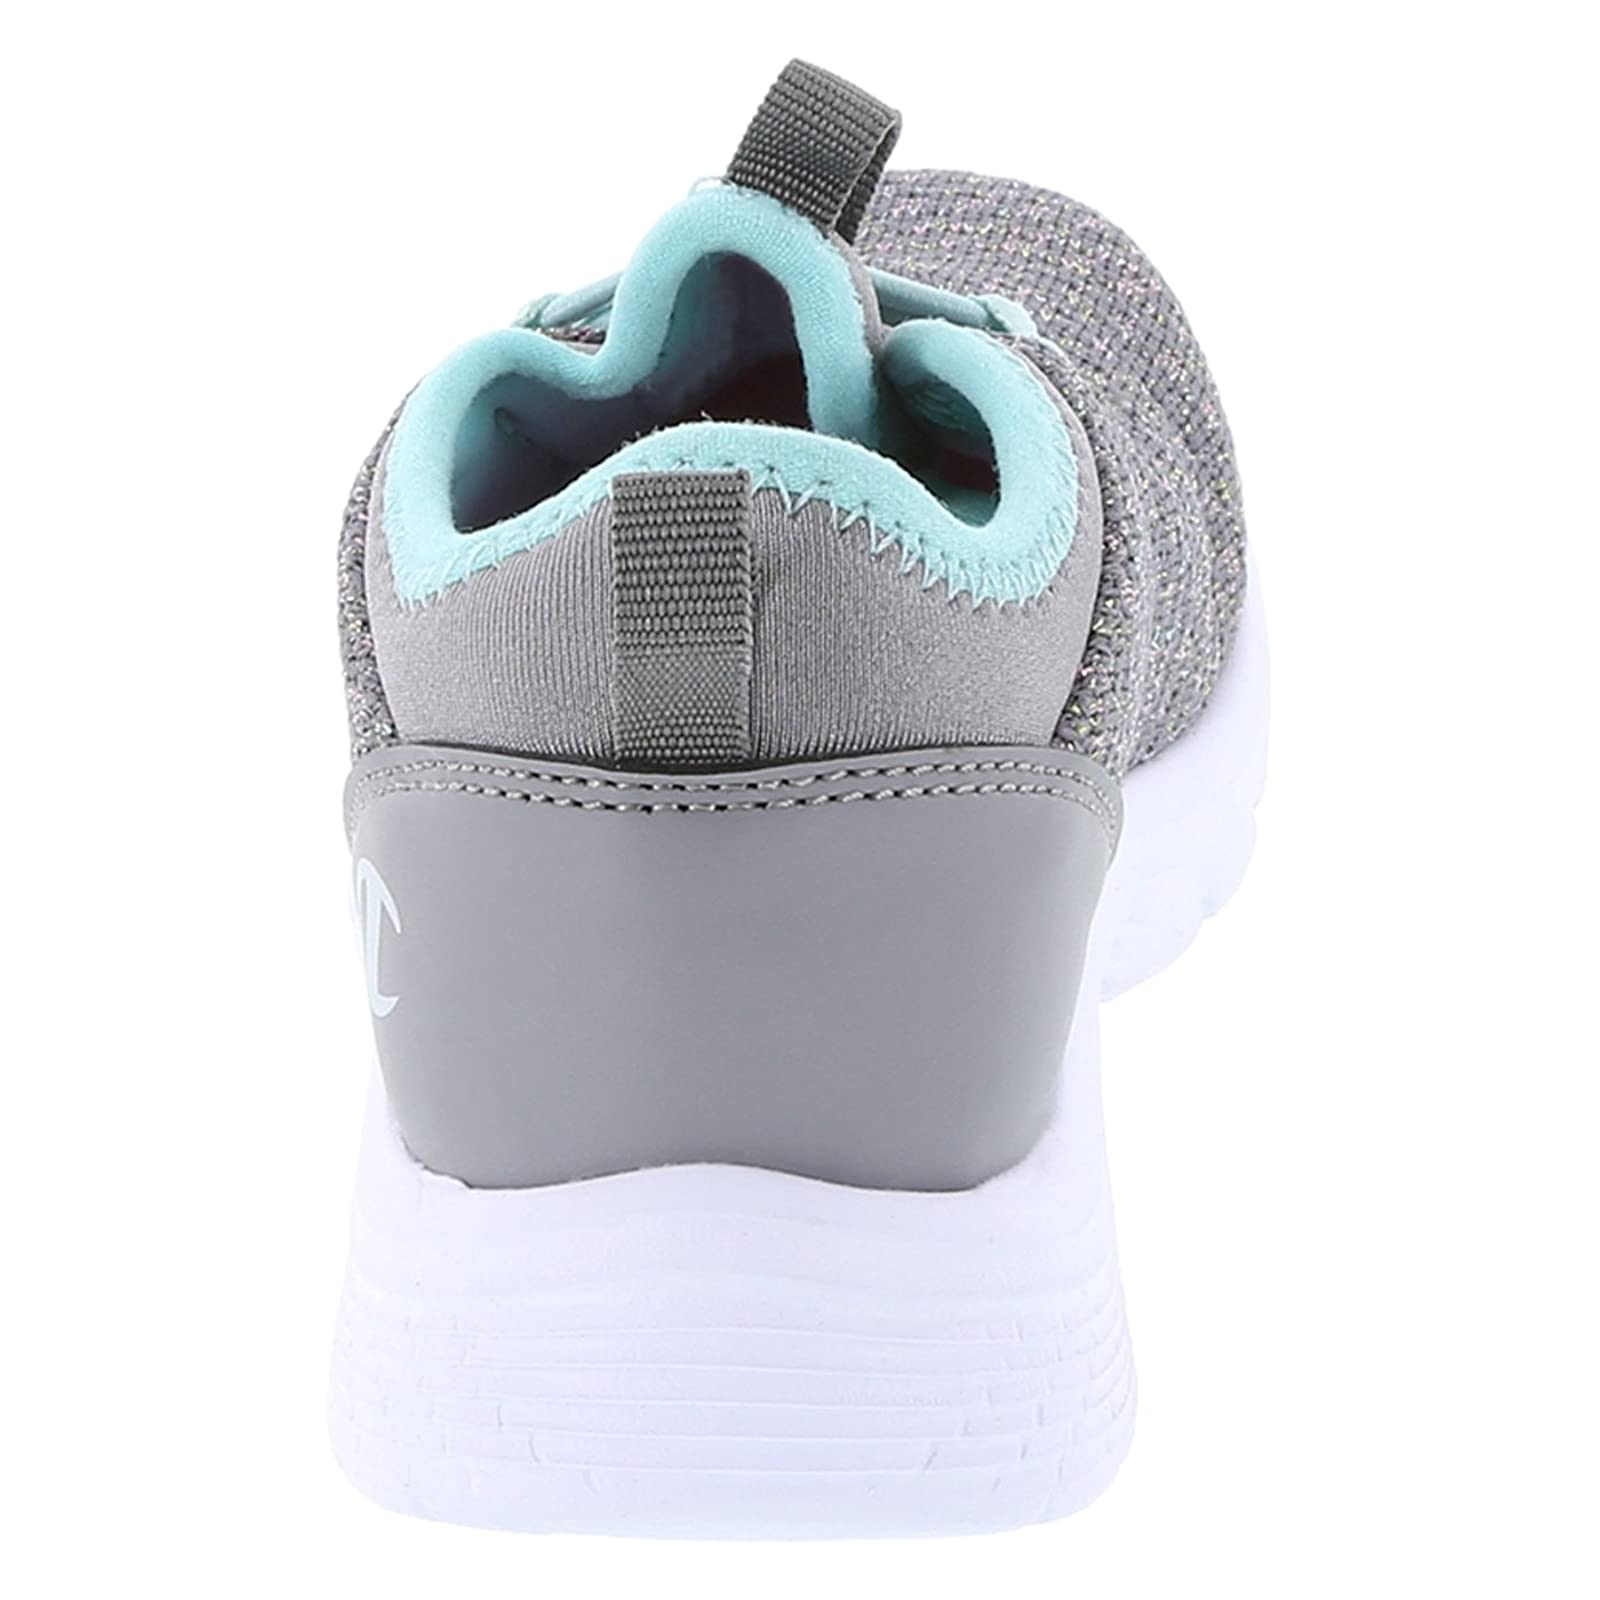 9d4ee9c39114 ... Champion Grey Girls  Moxie Slip-On Runner 174796135 - 2 ...